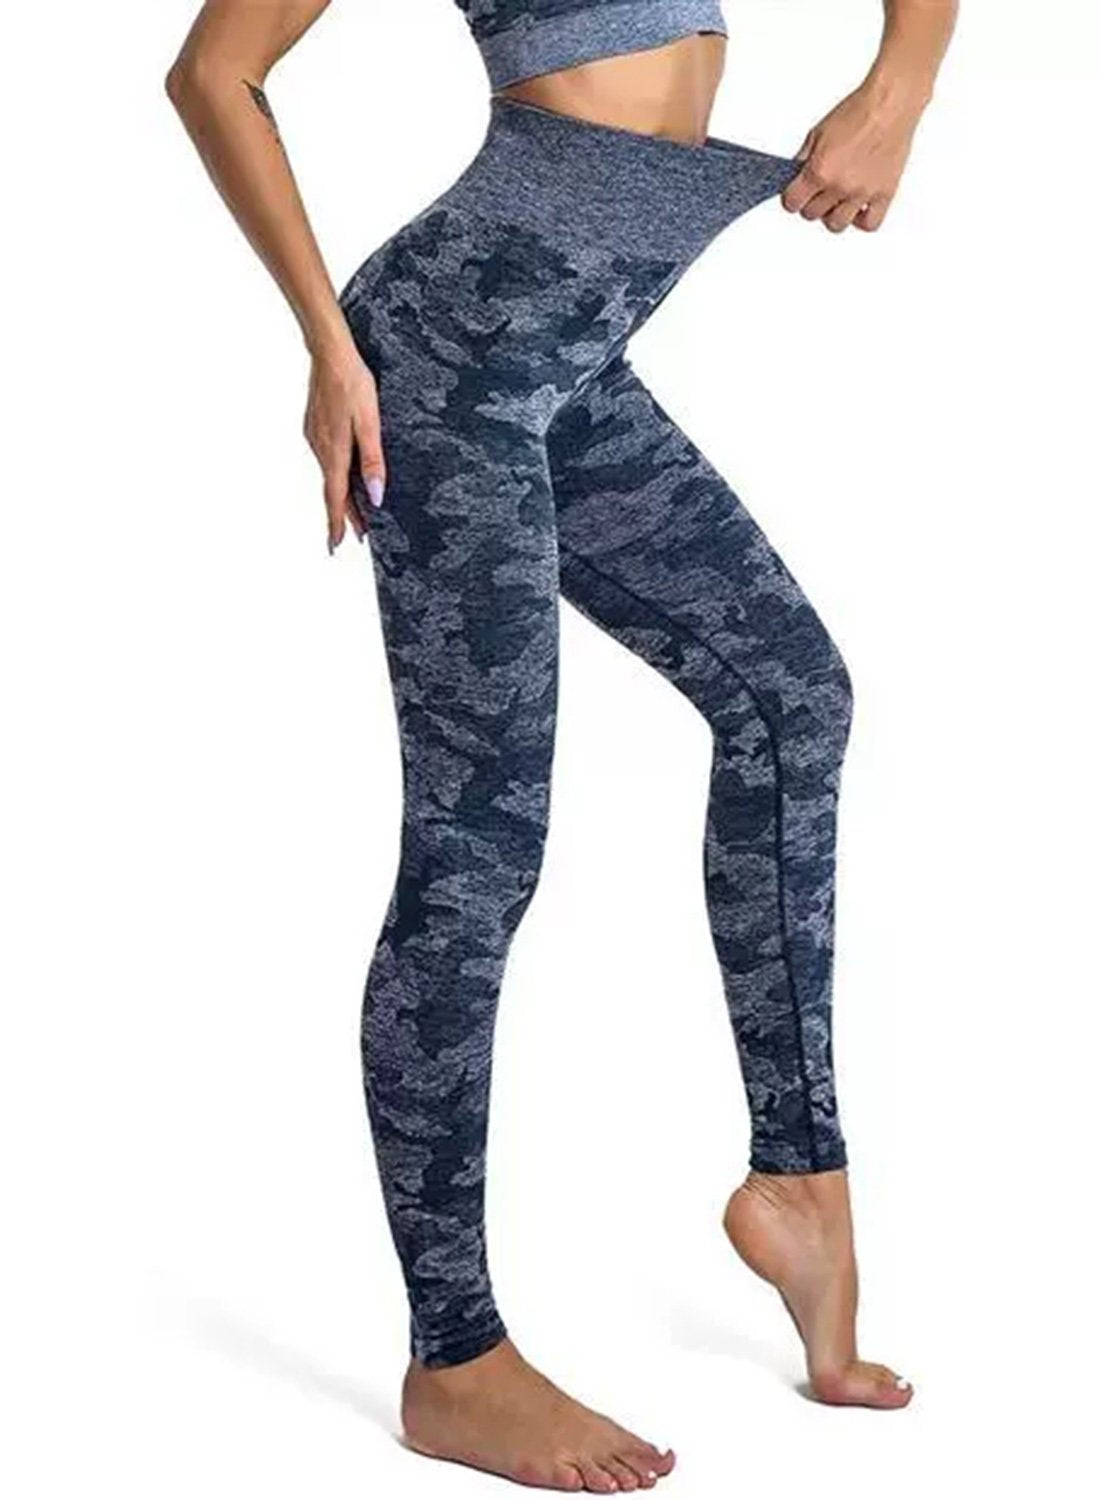 Women's Camouflage Breatheable Soft Workout Yoga Pants-JustFittoo